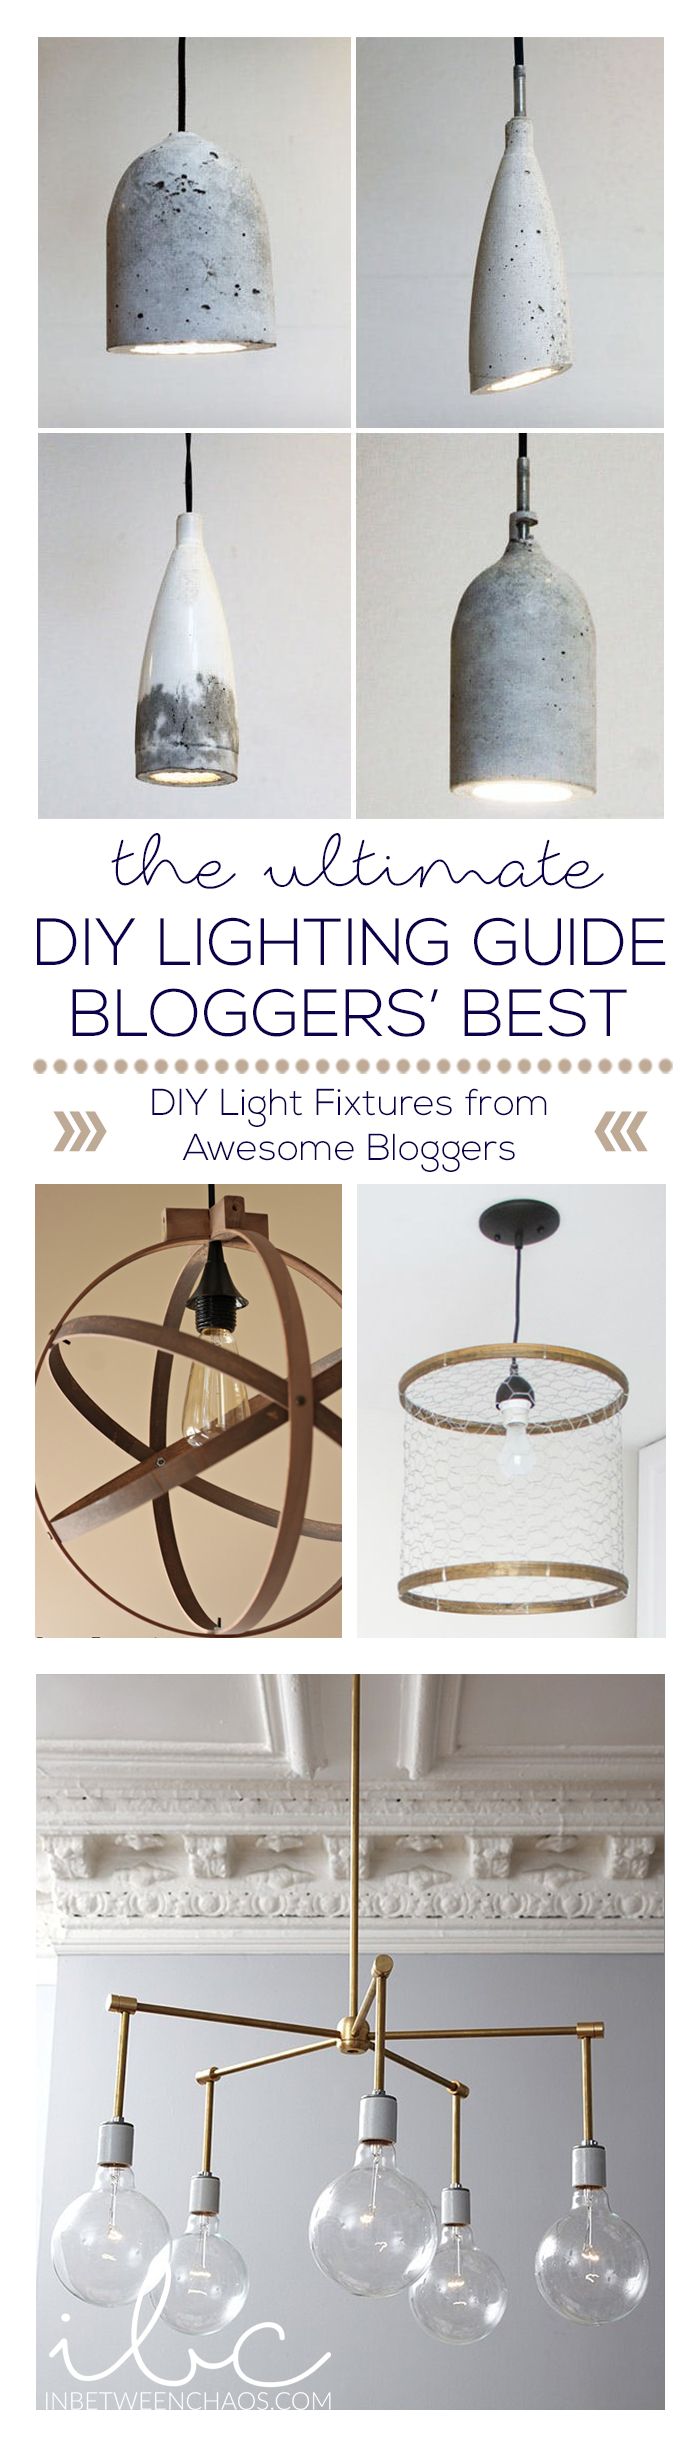 Ultimate DIY Lighting Guide | Bloggers Best | inbetweenchaos.com